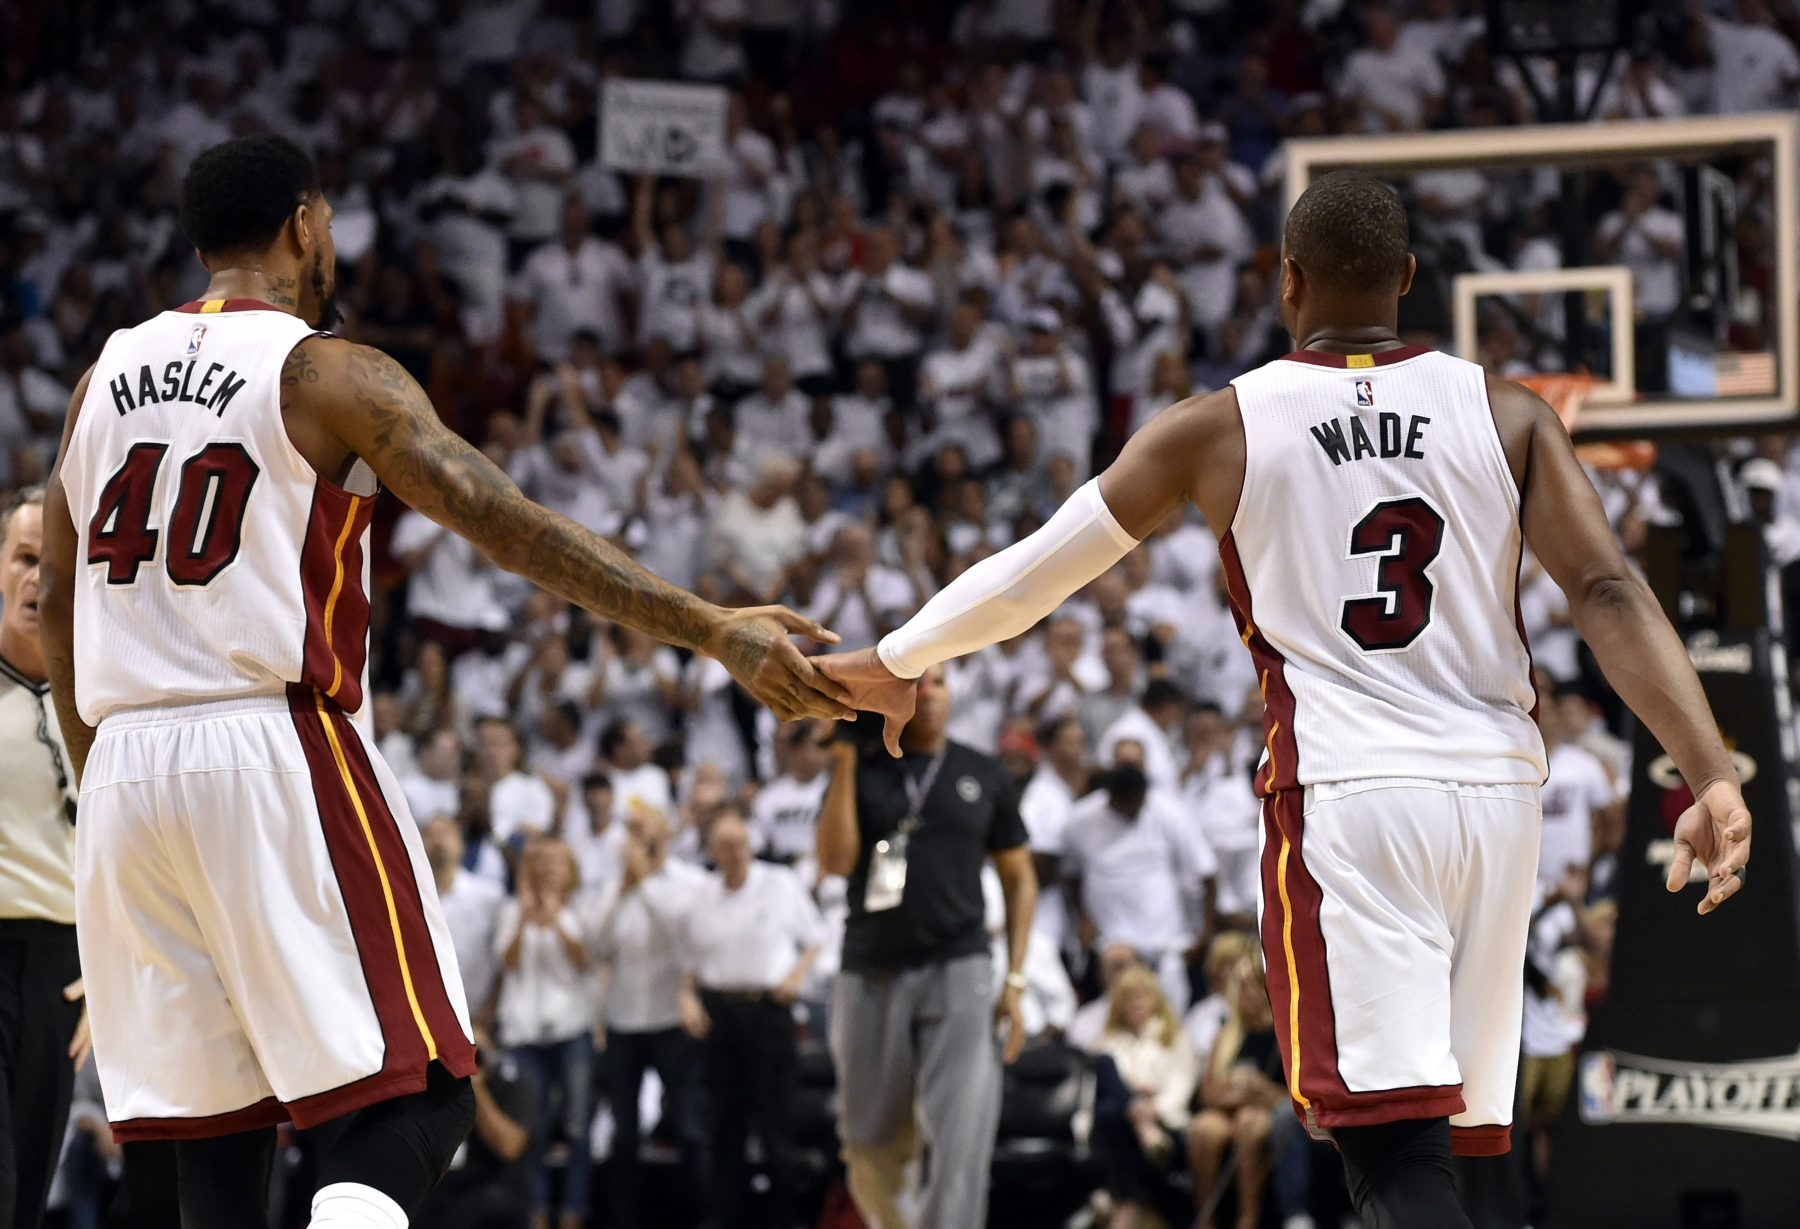 End of an era: Dwyane Wade and Dirk Nowitzki retire